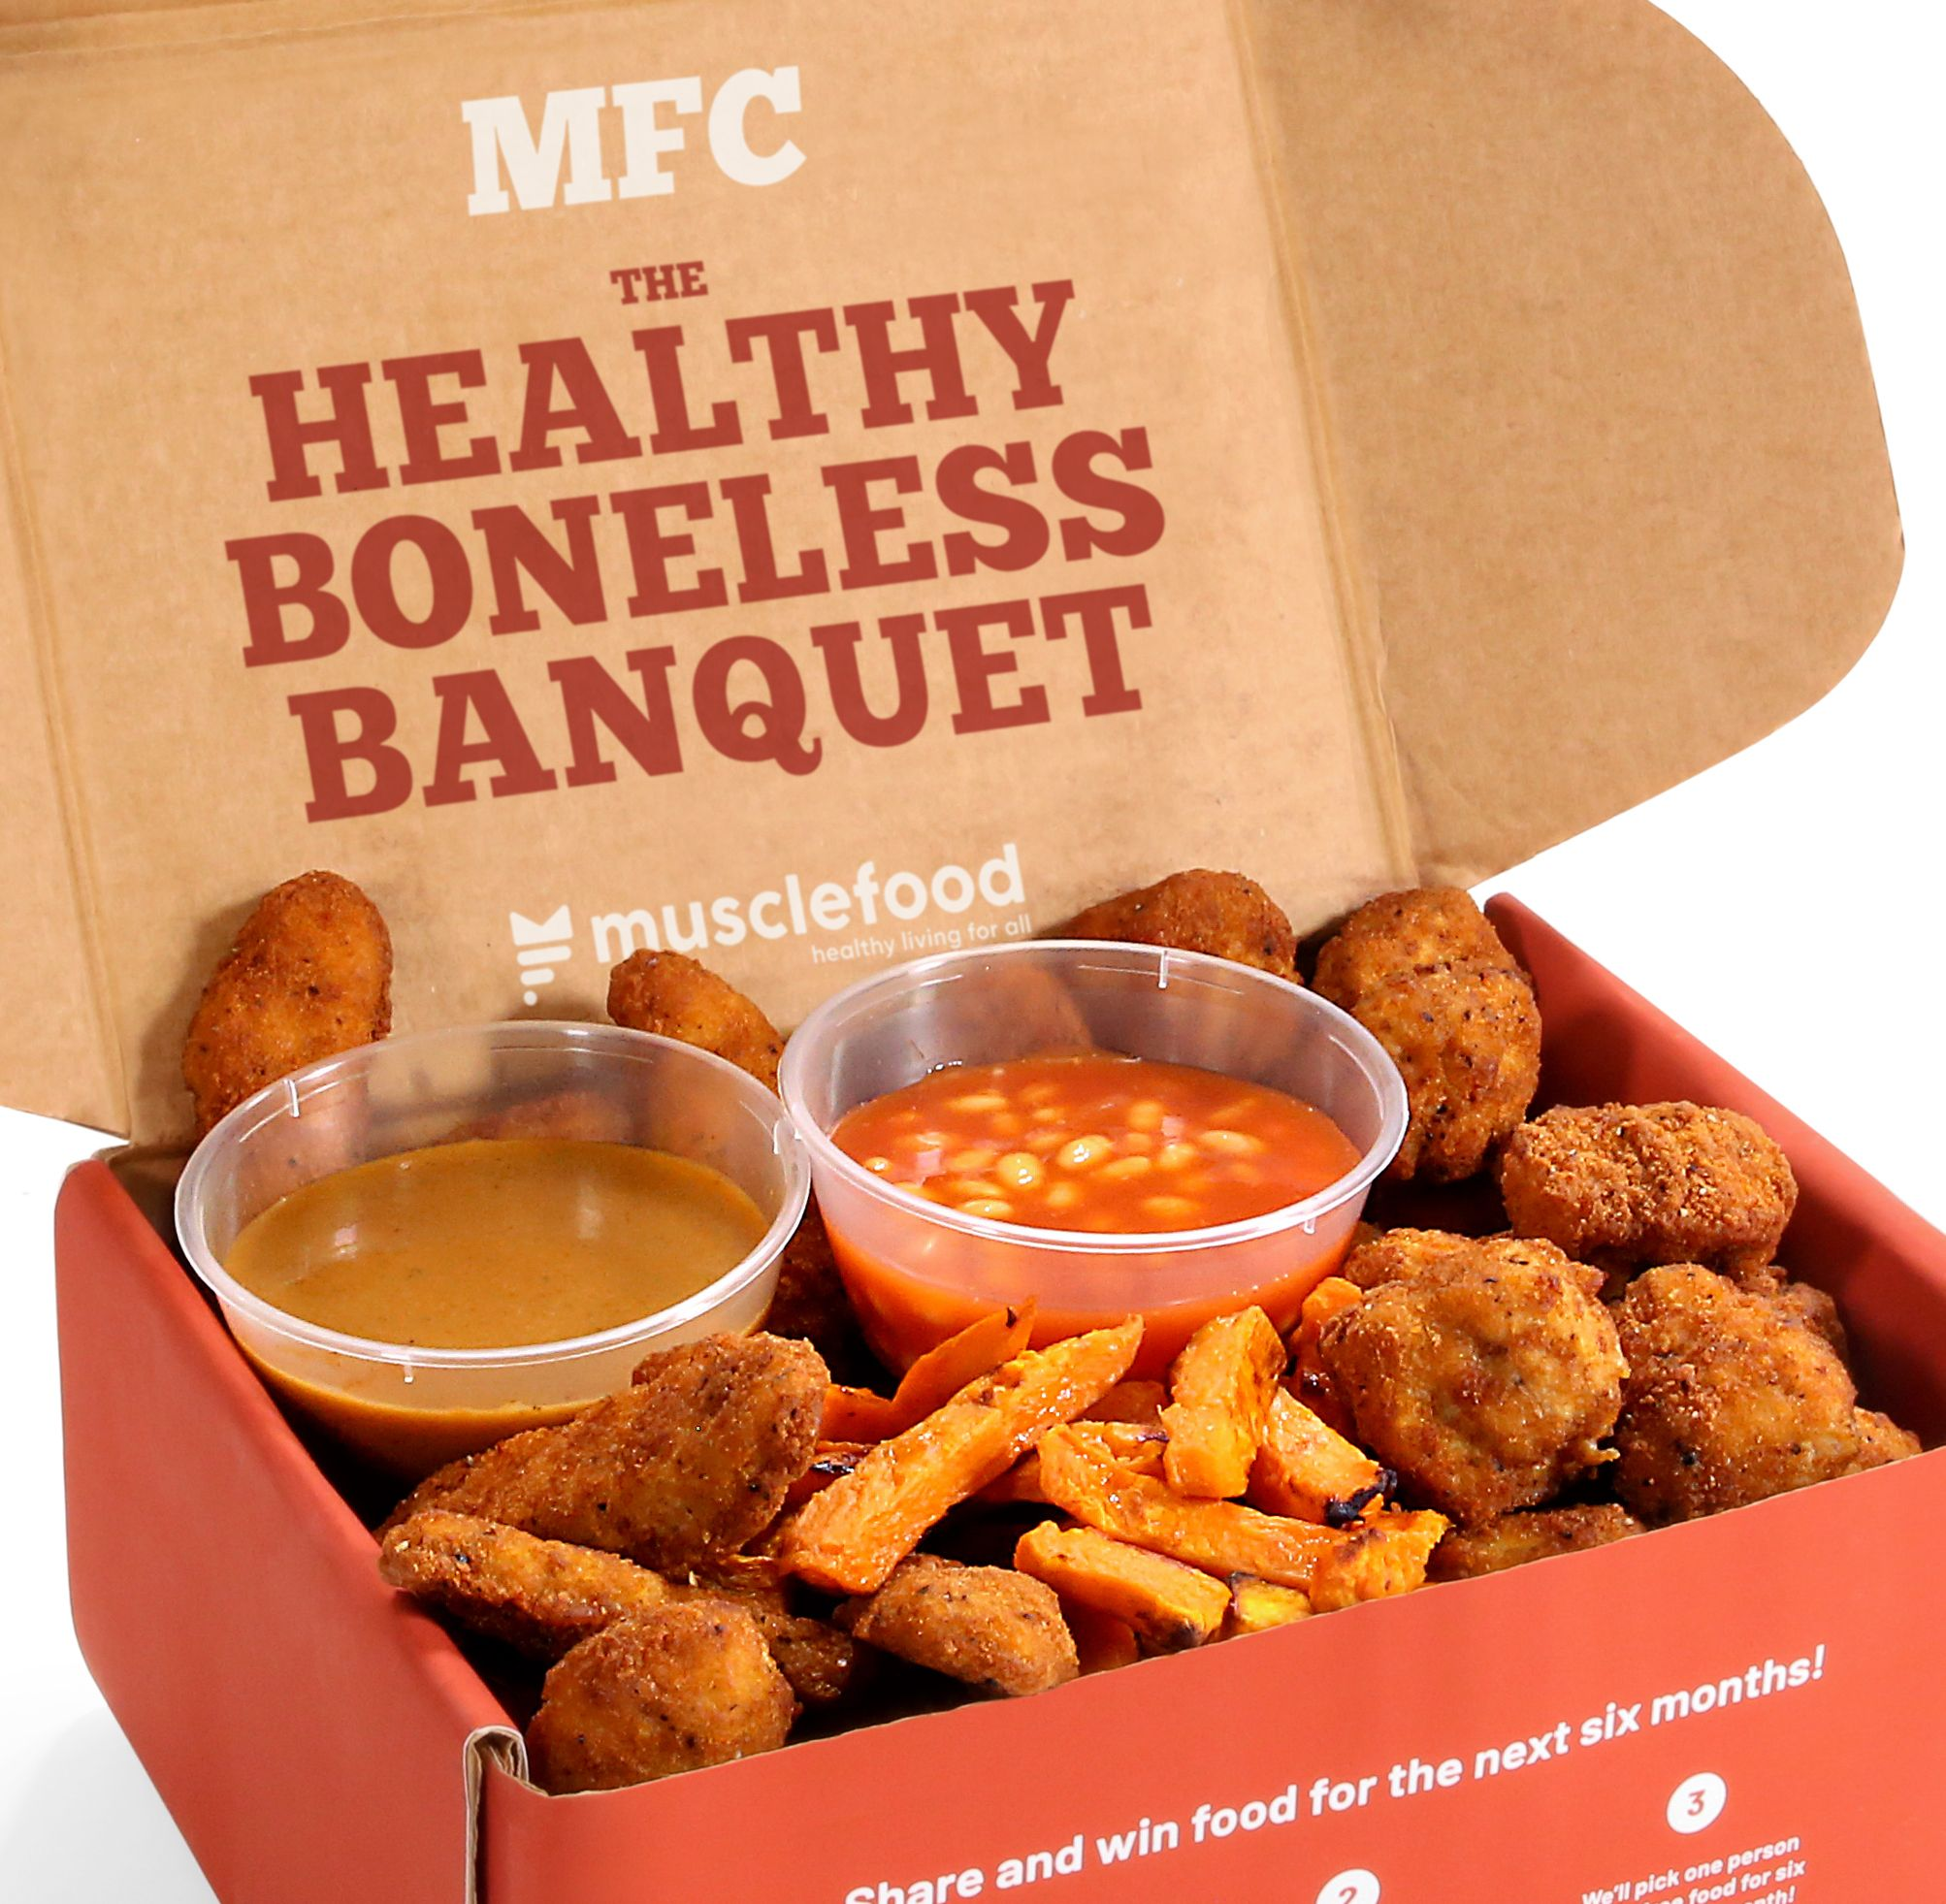 Musclefood Is Now Offering A Healthy Alternative To Kfc S Boneless Banquet